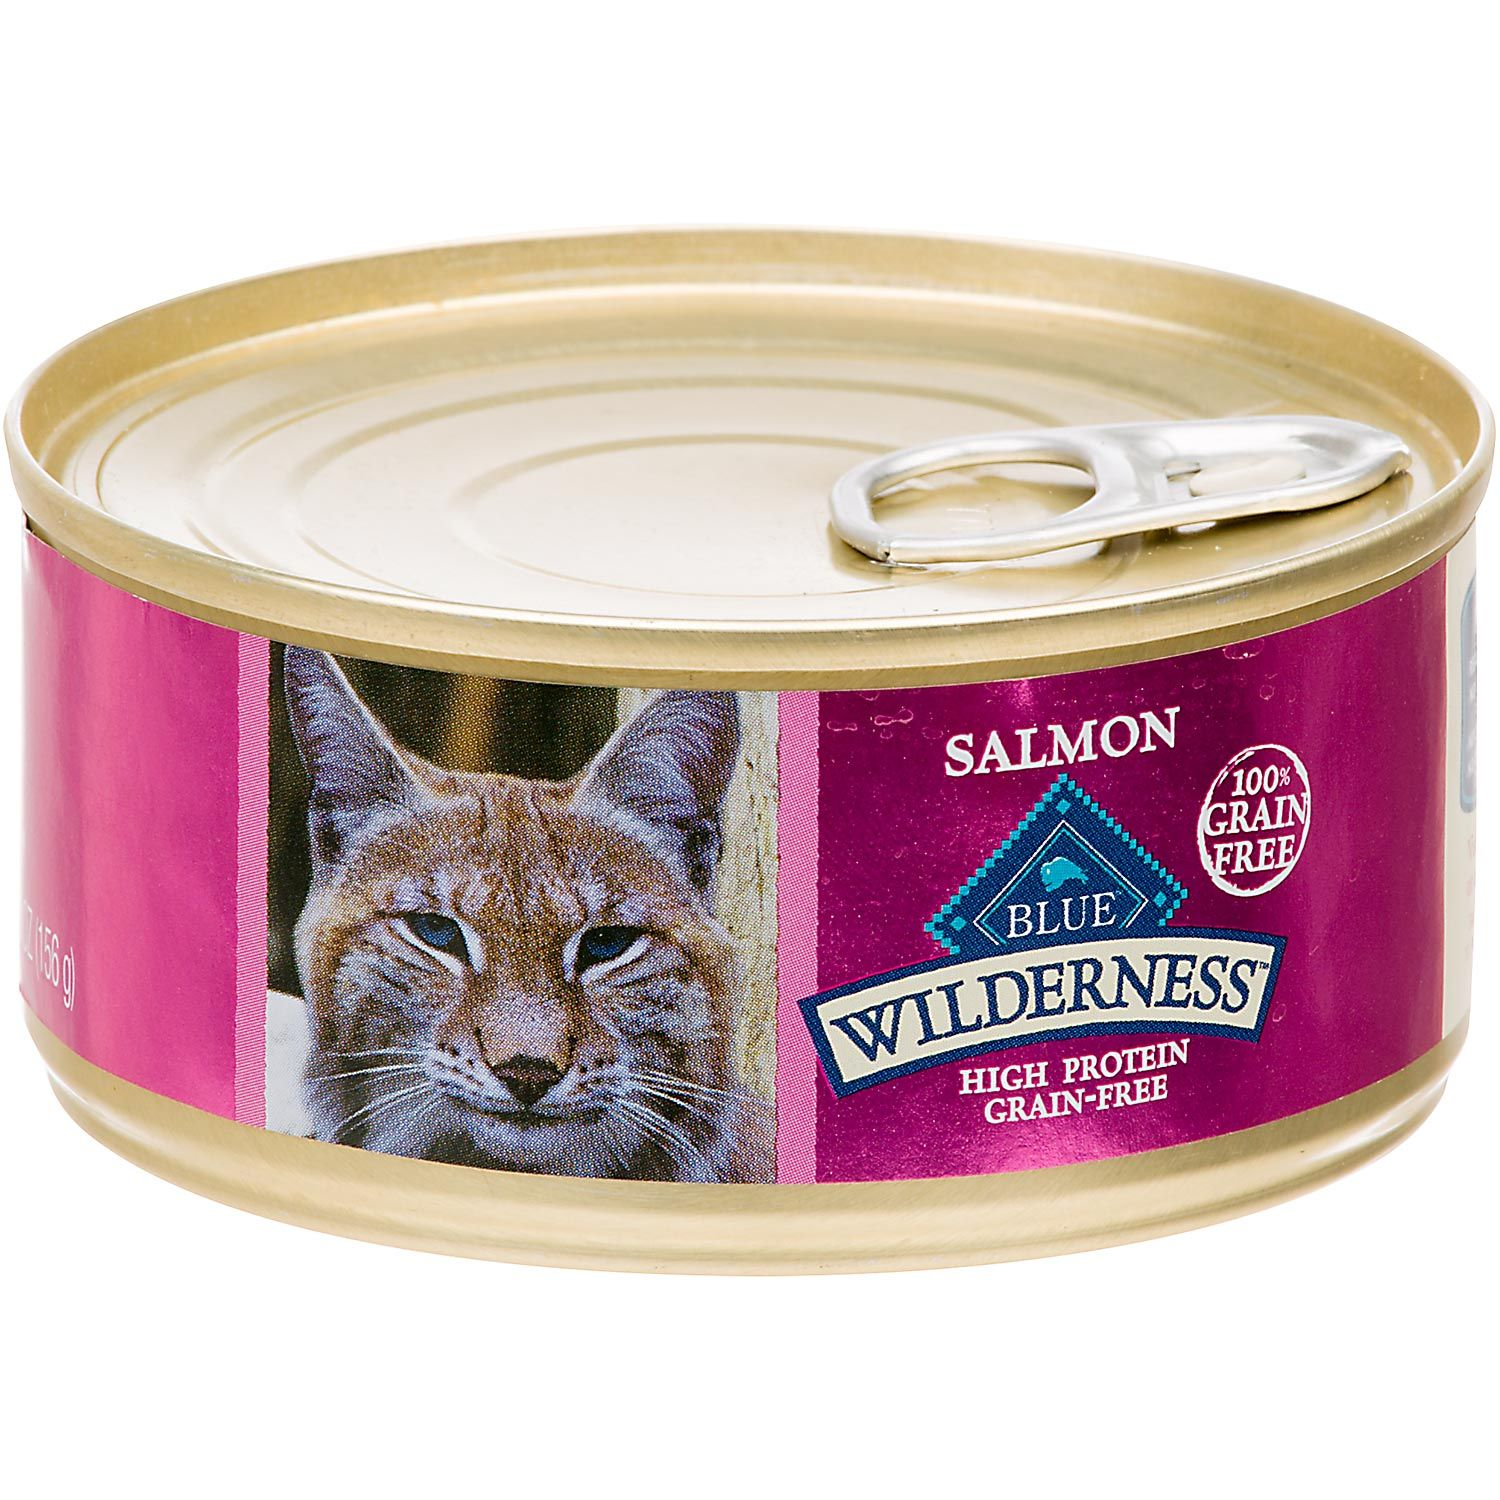 Blue buffalo wilderness canned cat food canned cat food